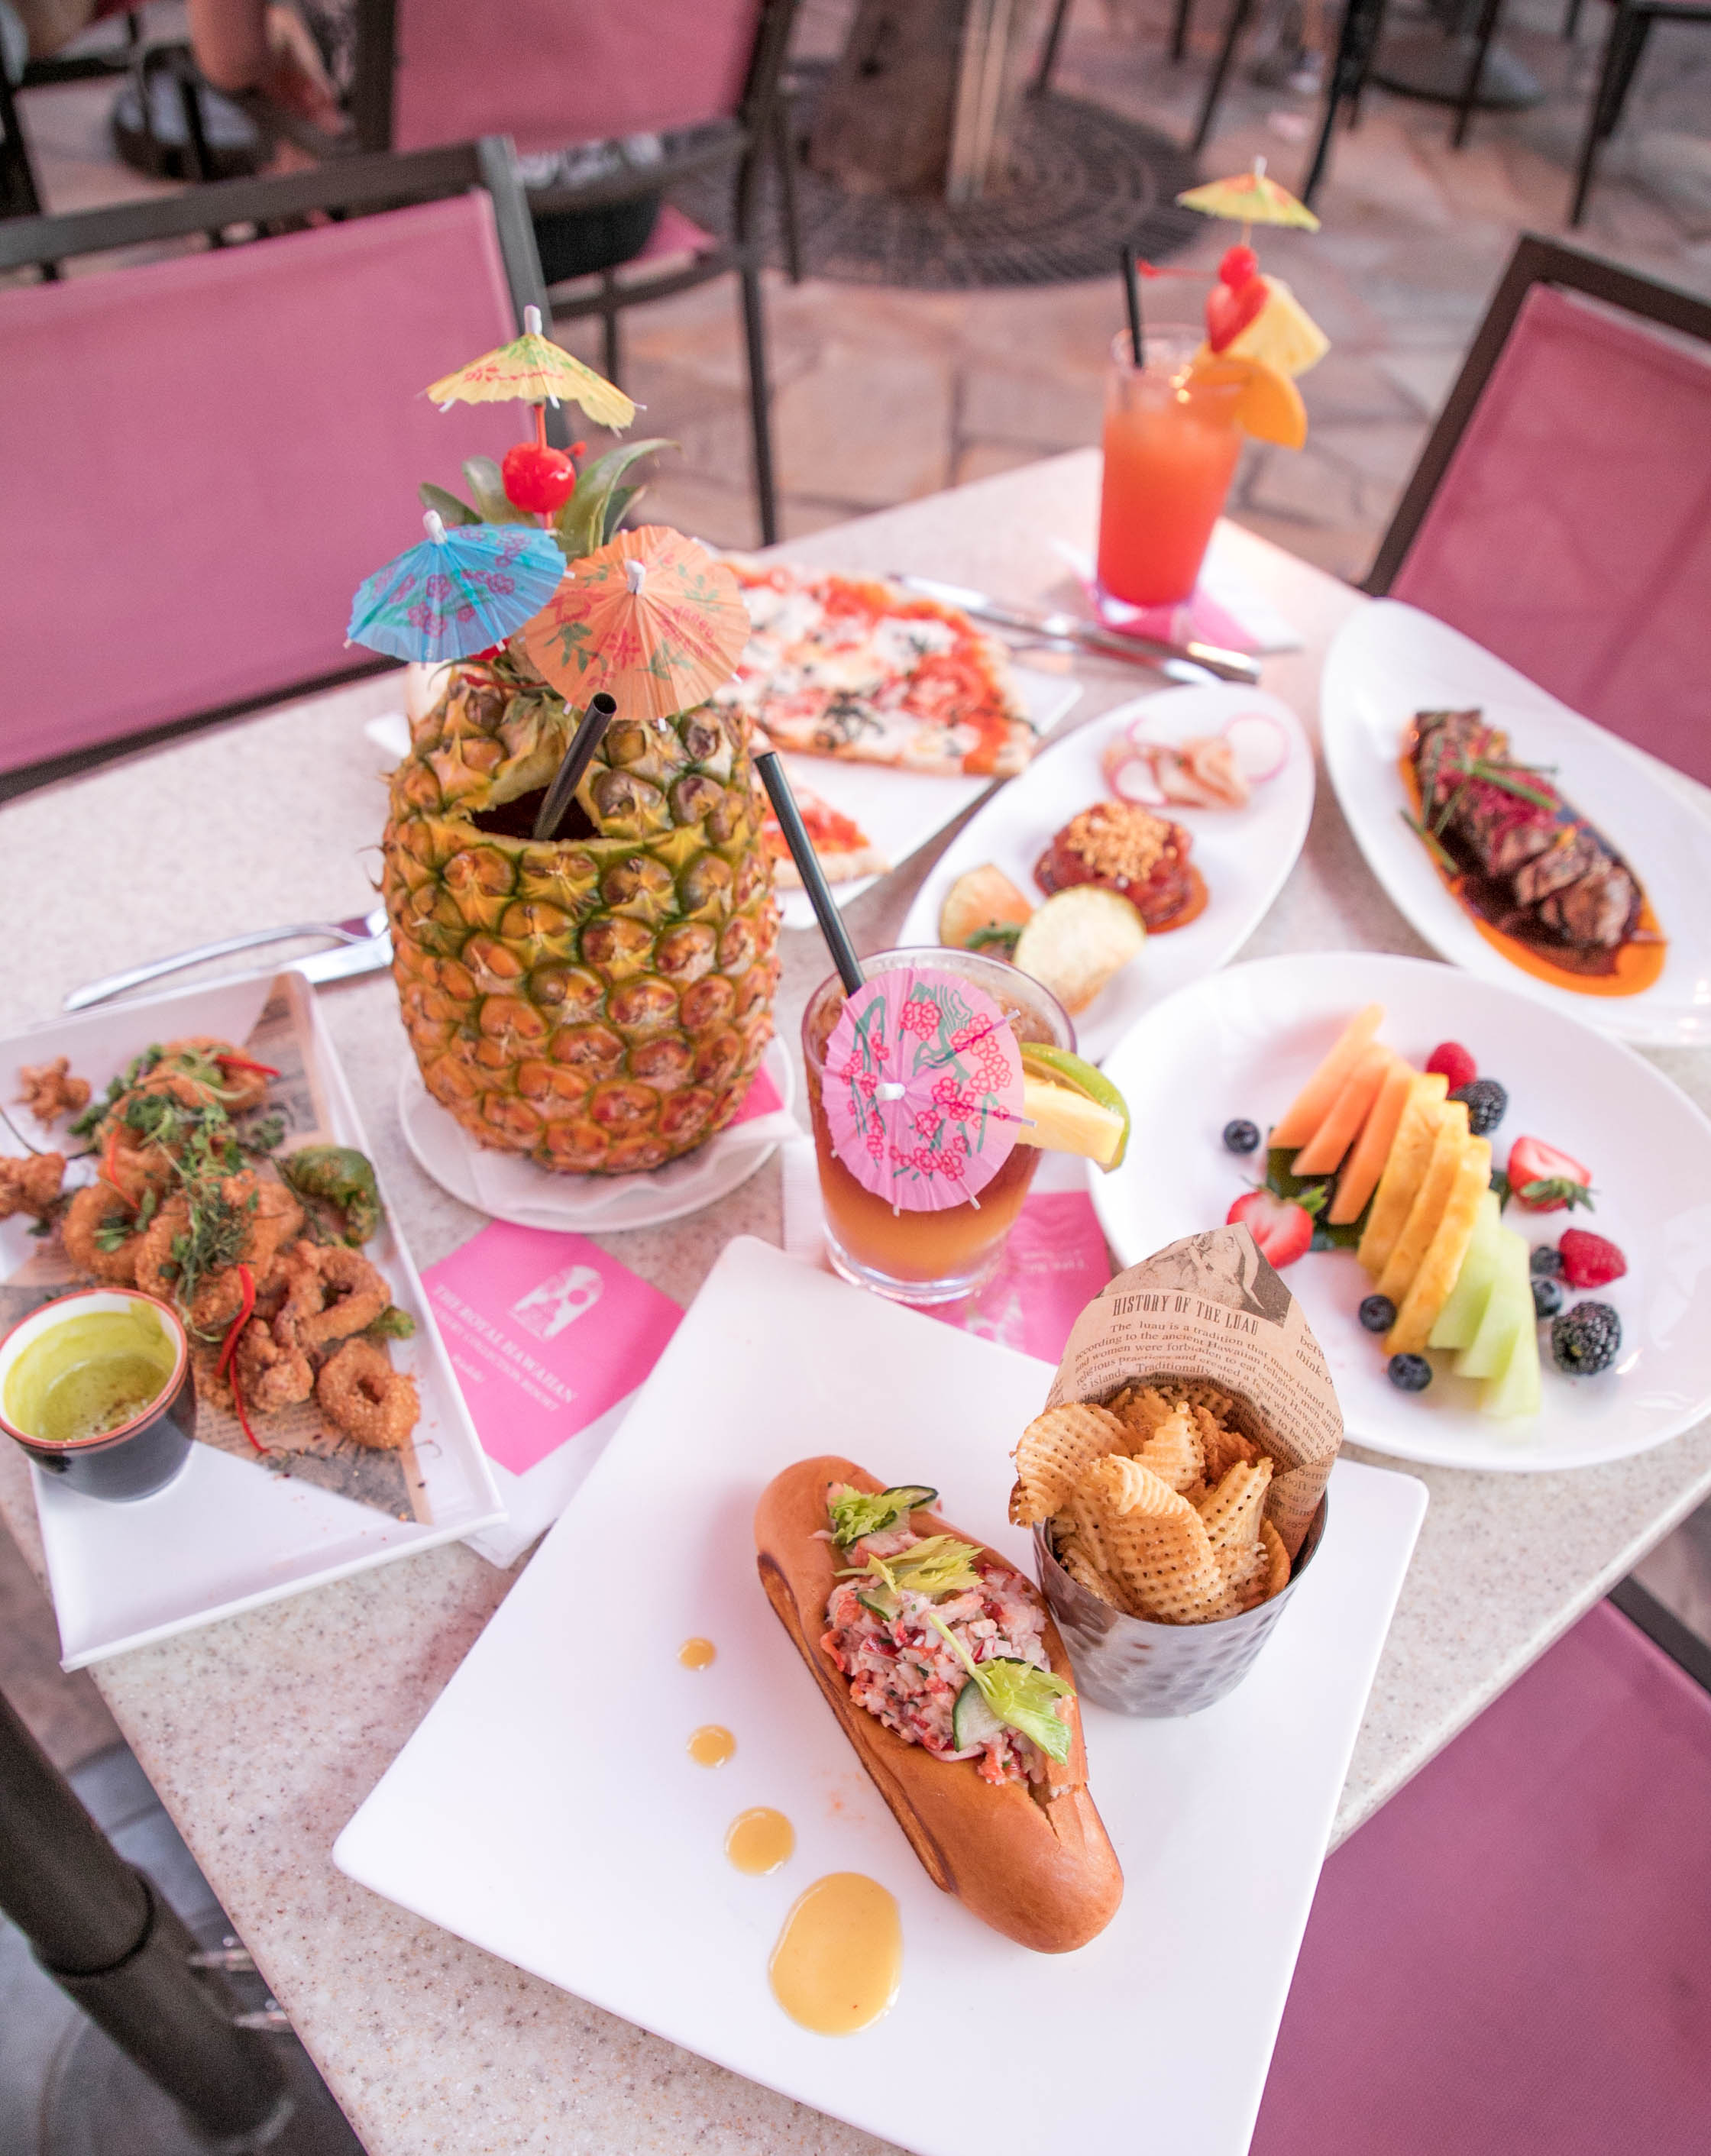 variety of food and tropical drinks on a table